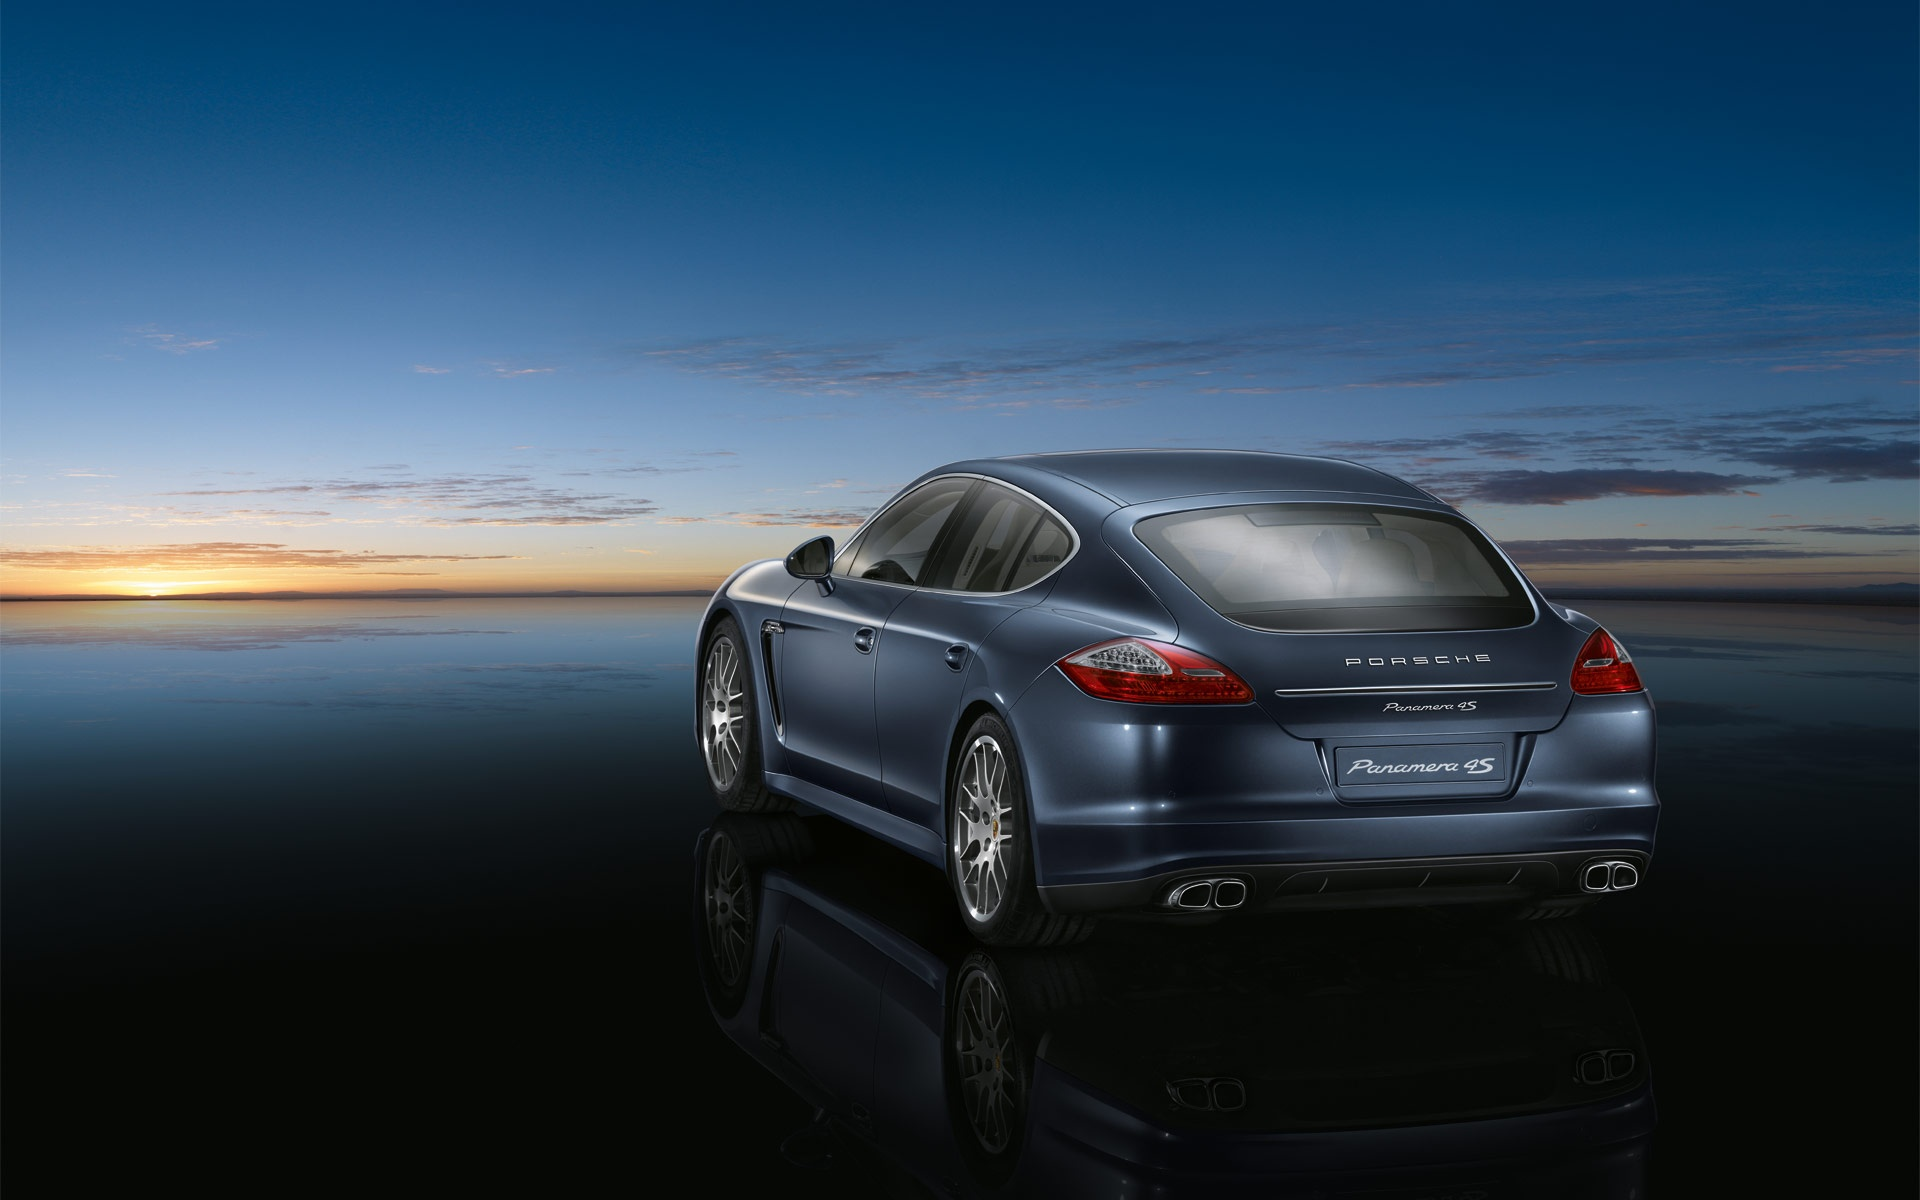 Hd Wallpapers Porsche Panamera wallpaper   703401 1920x1200